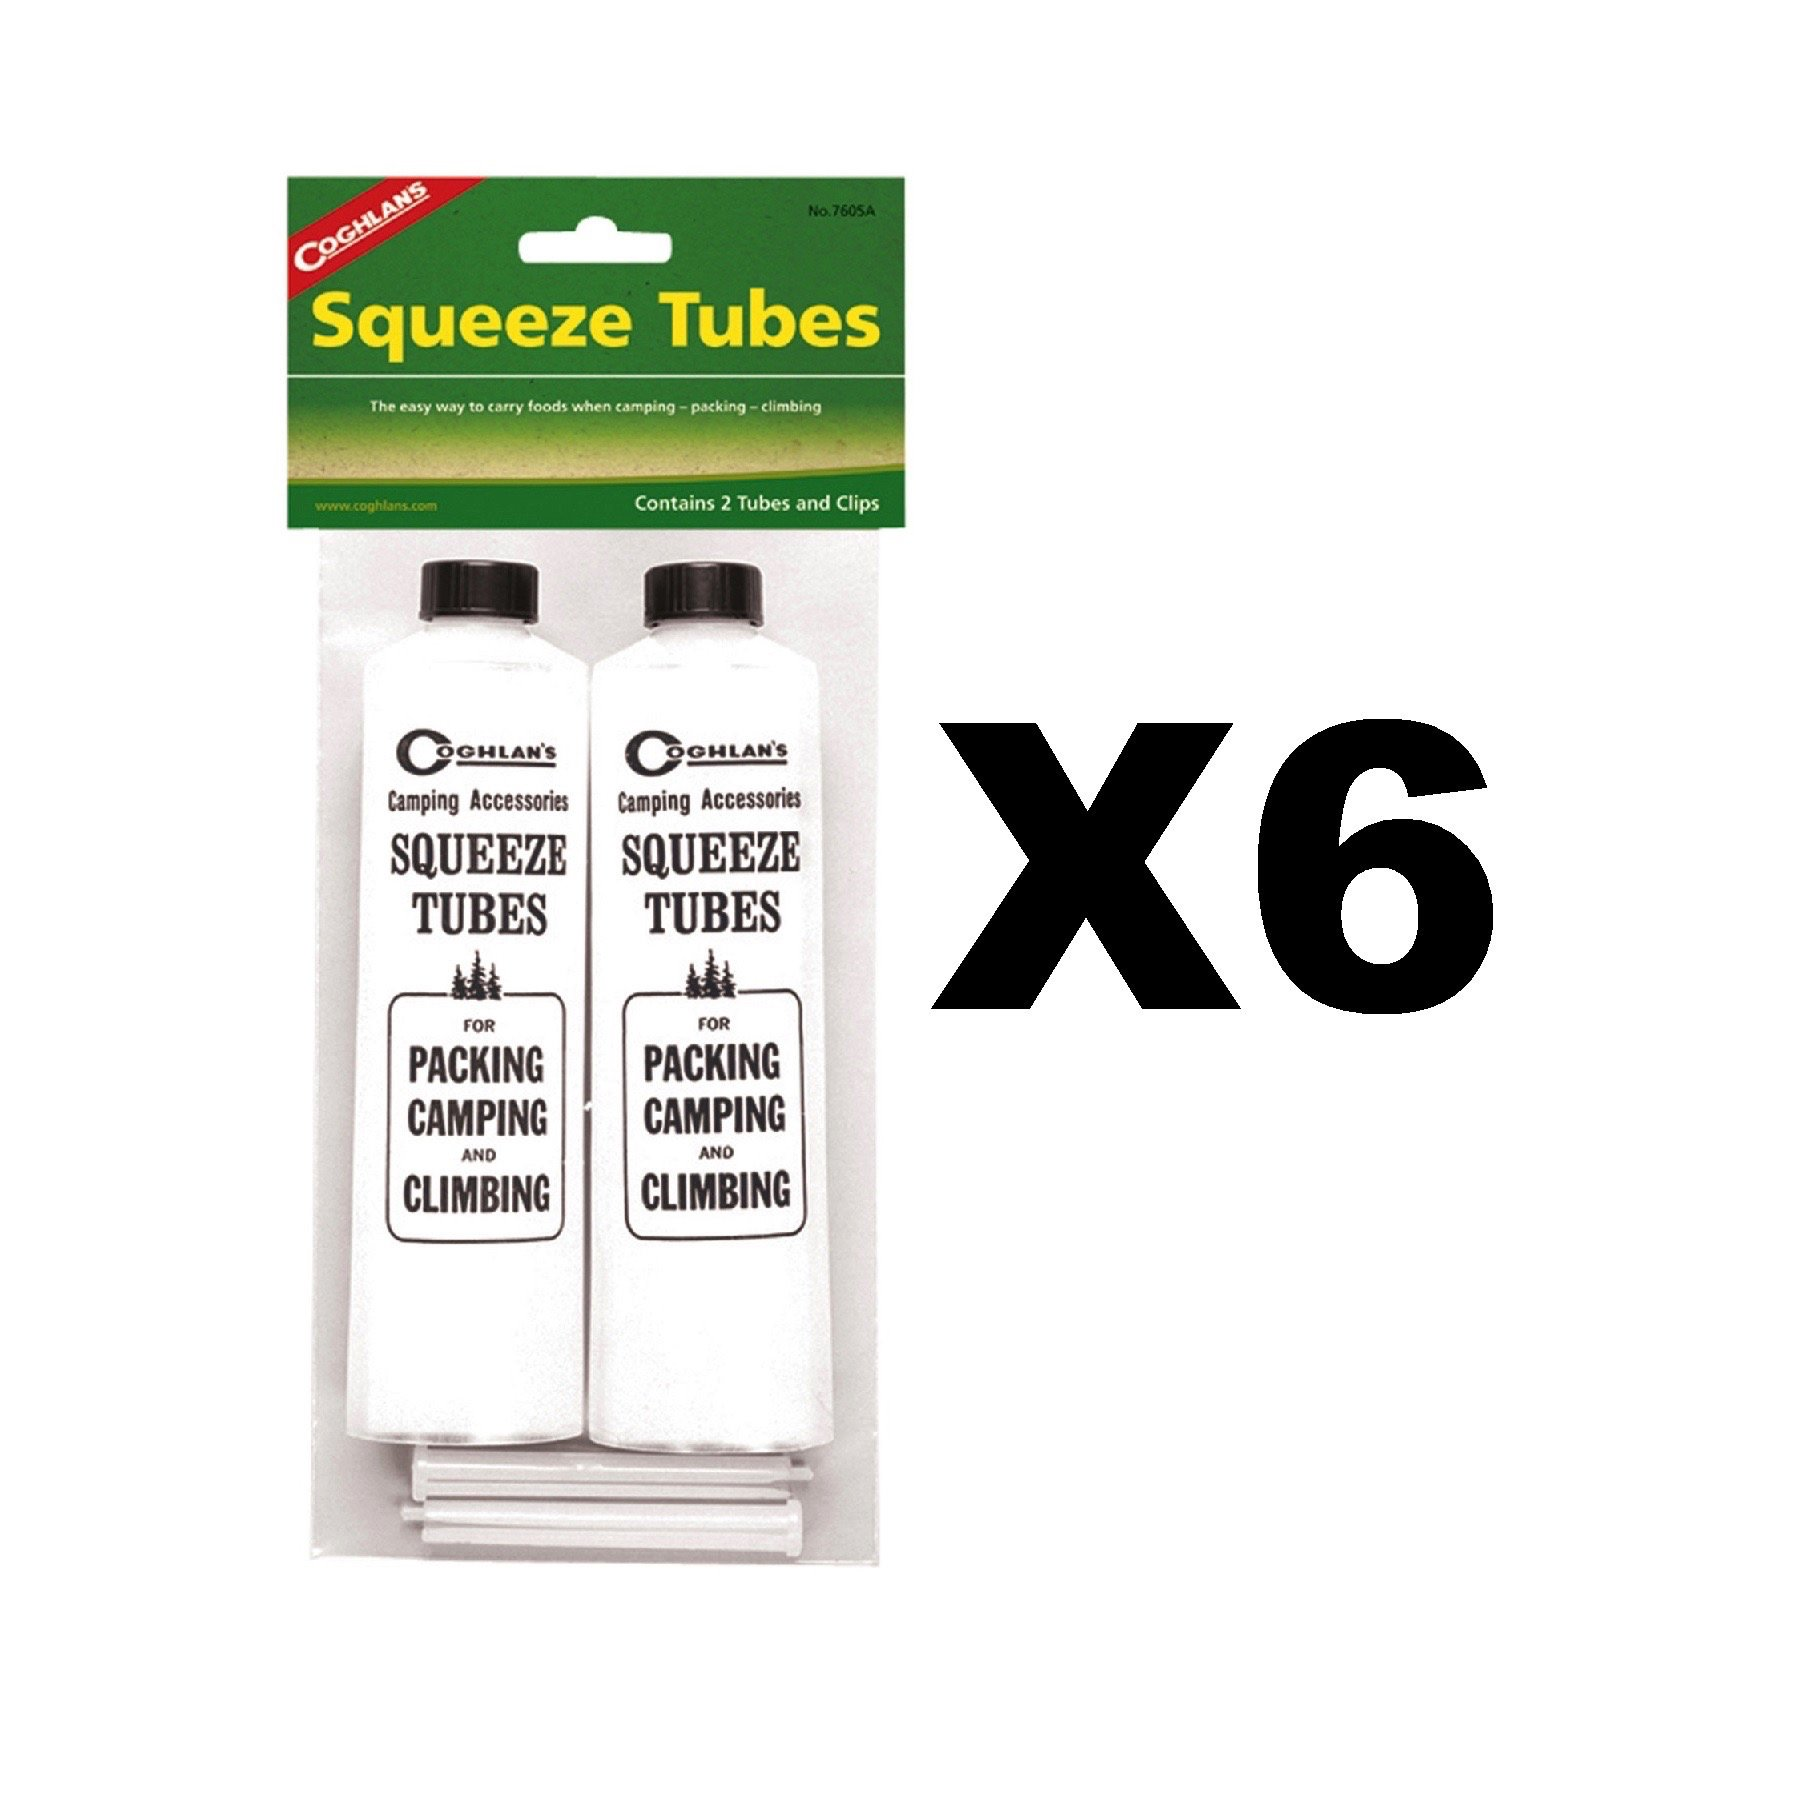 Coghlan's Squeeze Tubes Camping Reusable Plastic Food Storage (6-Pack of 2)